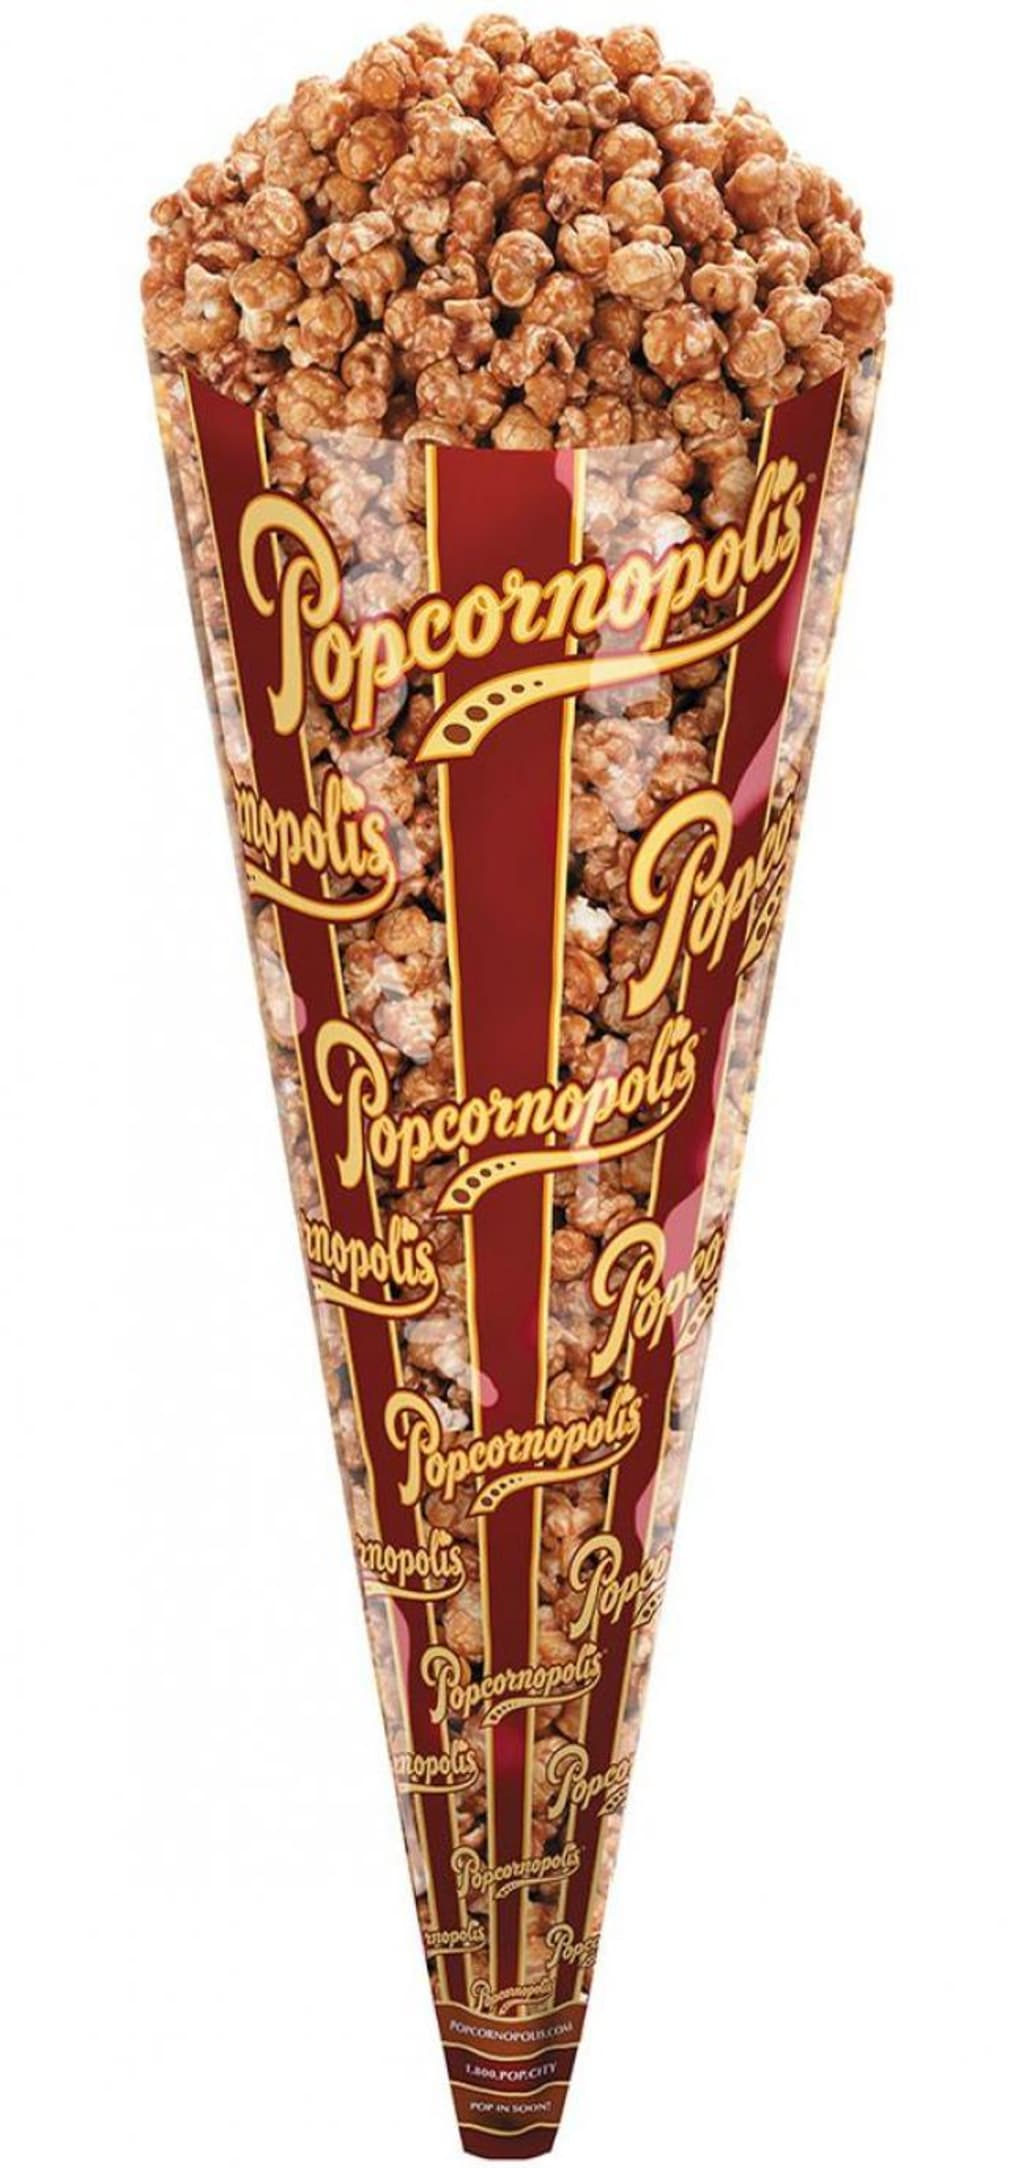 8 Reasons to Make Your Popcornopolis Popcorn